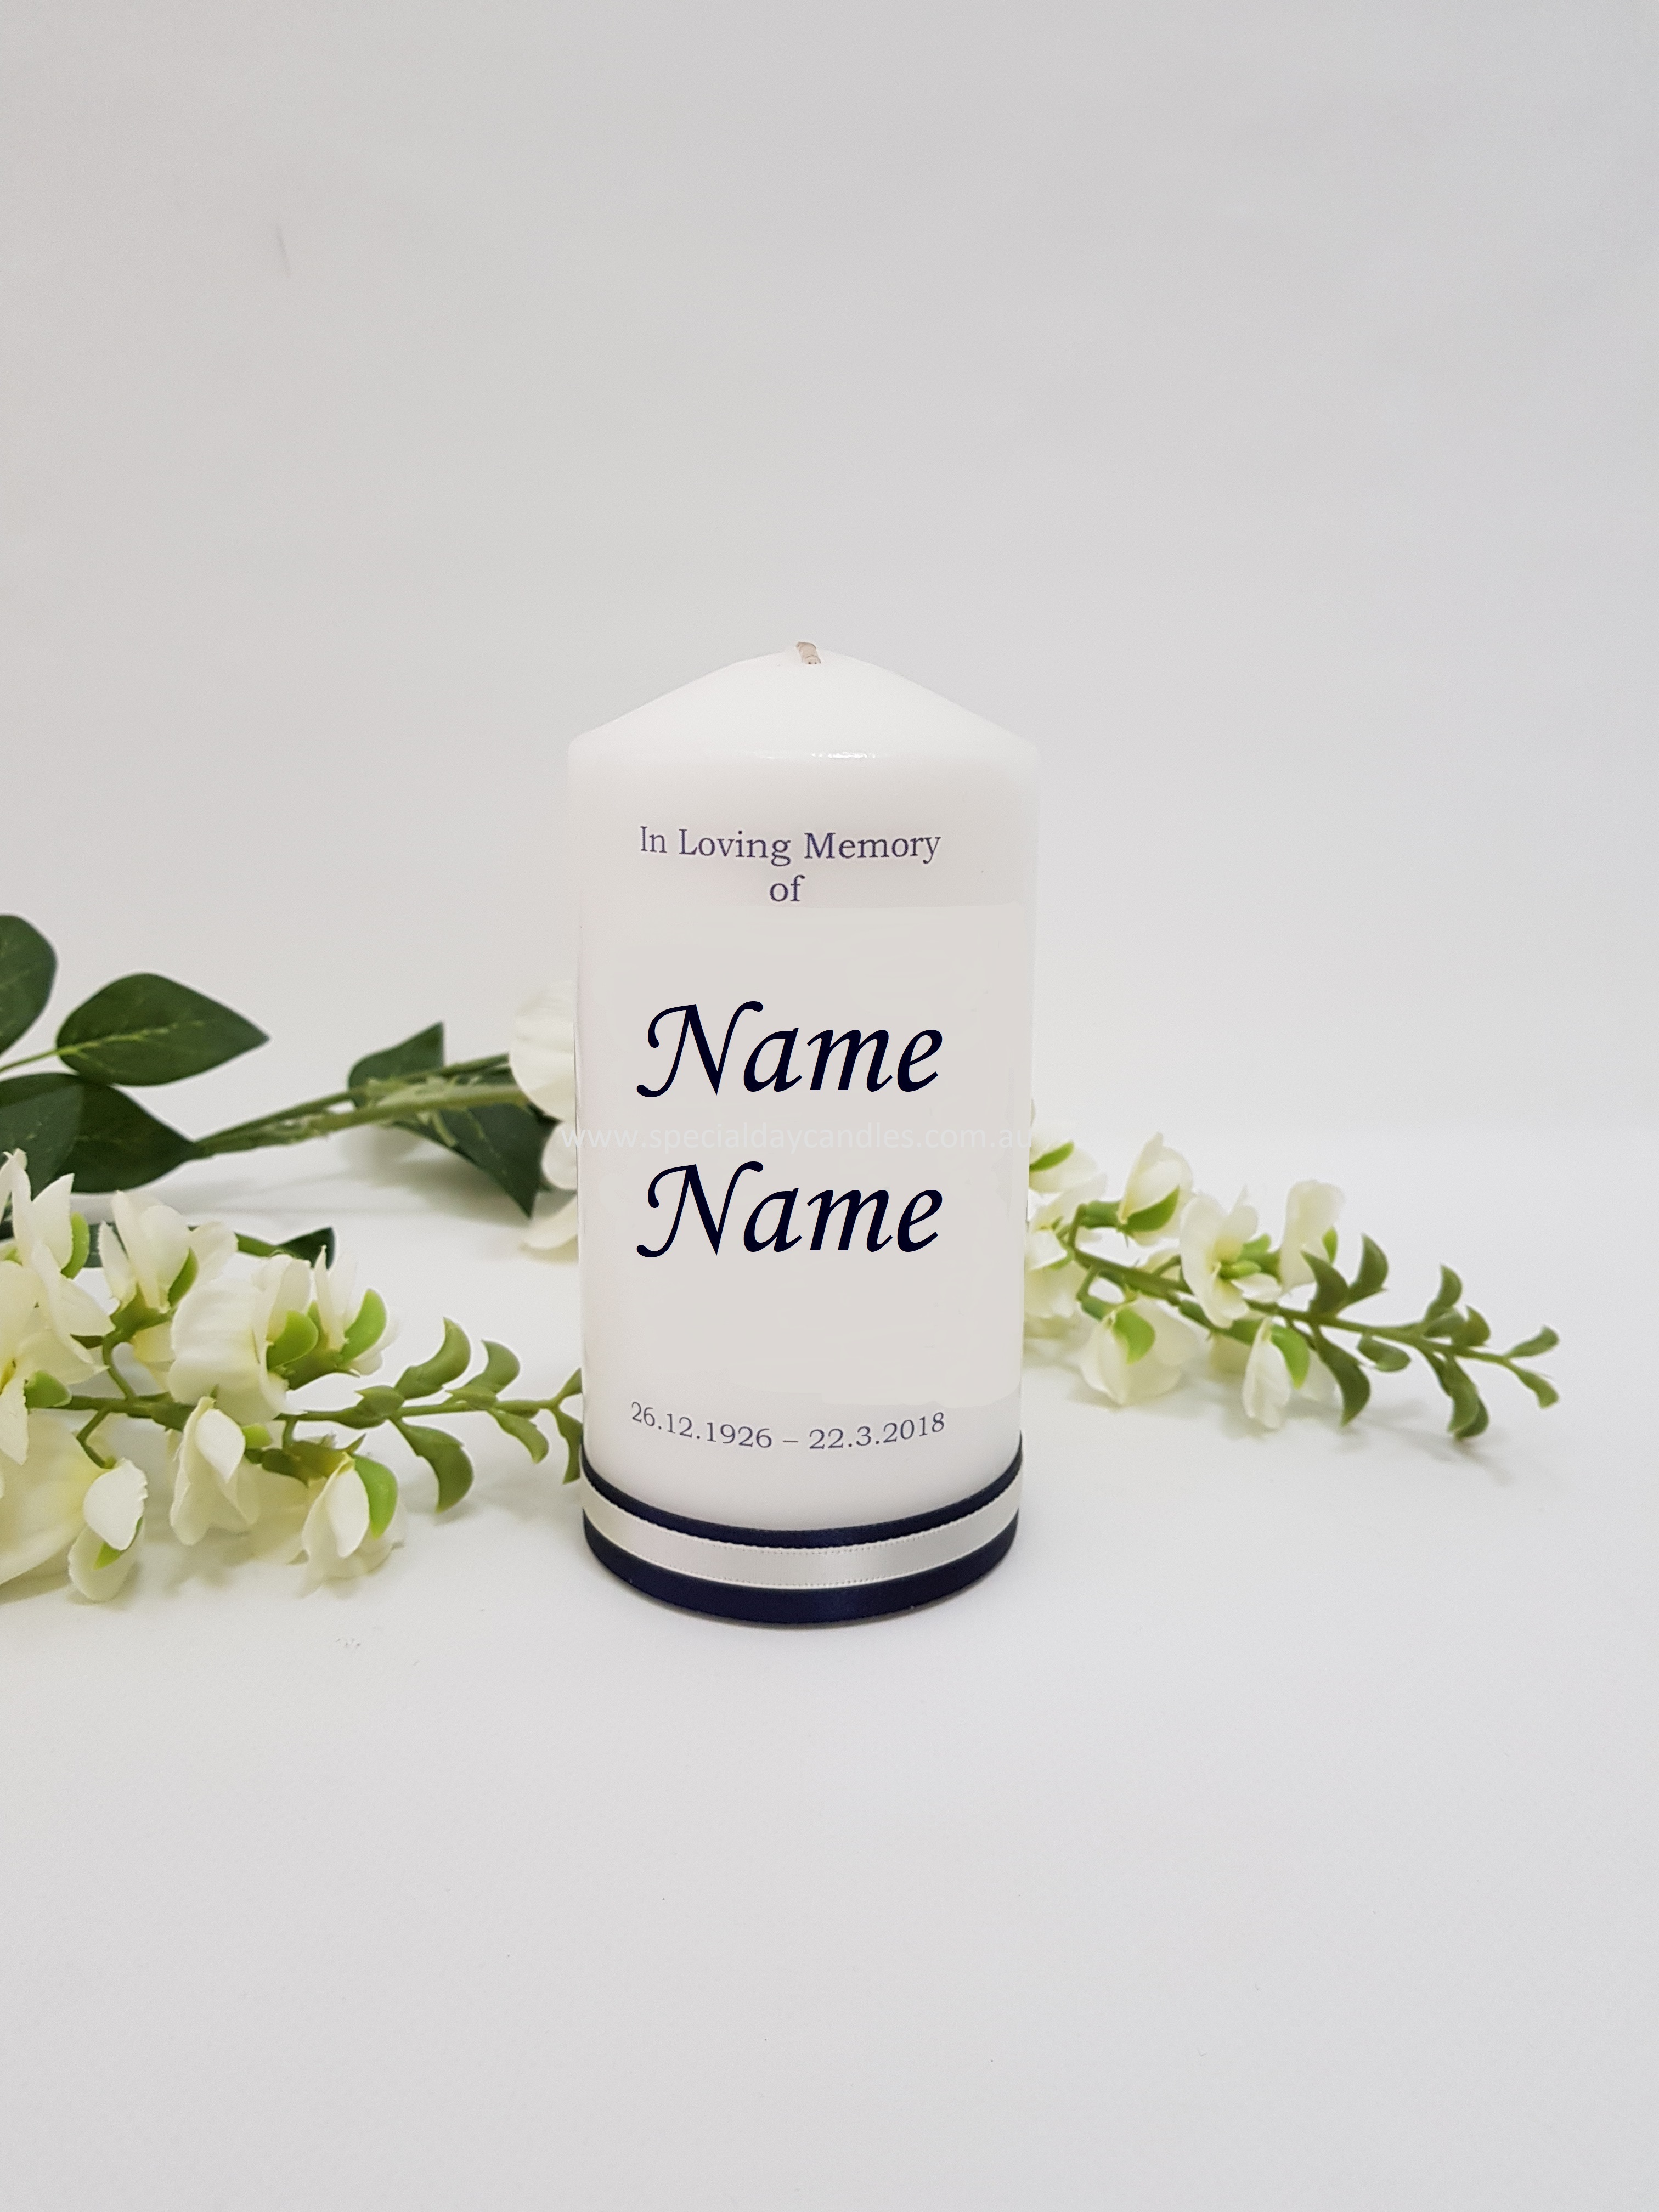 Memorial 3 special day candles memorial funeral personalised candle photo n3f2f6 izmirmasajfo